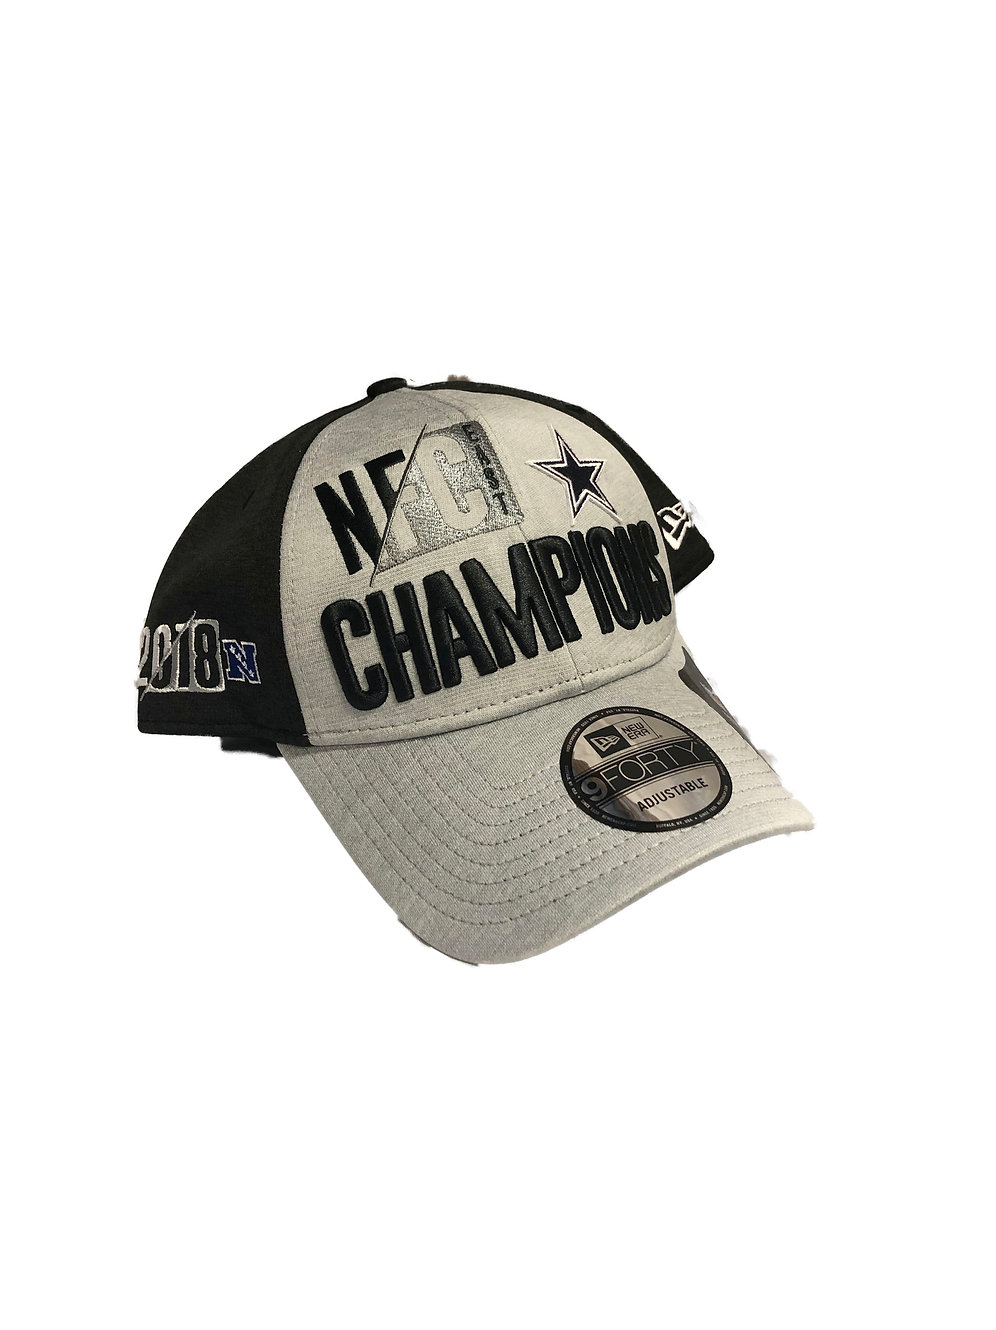 Dallas Cowboys NFC East Champions Snap Back | tristategotit